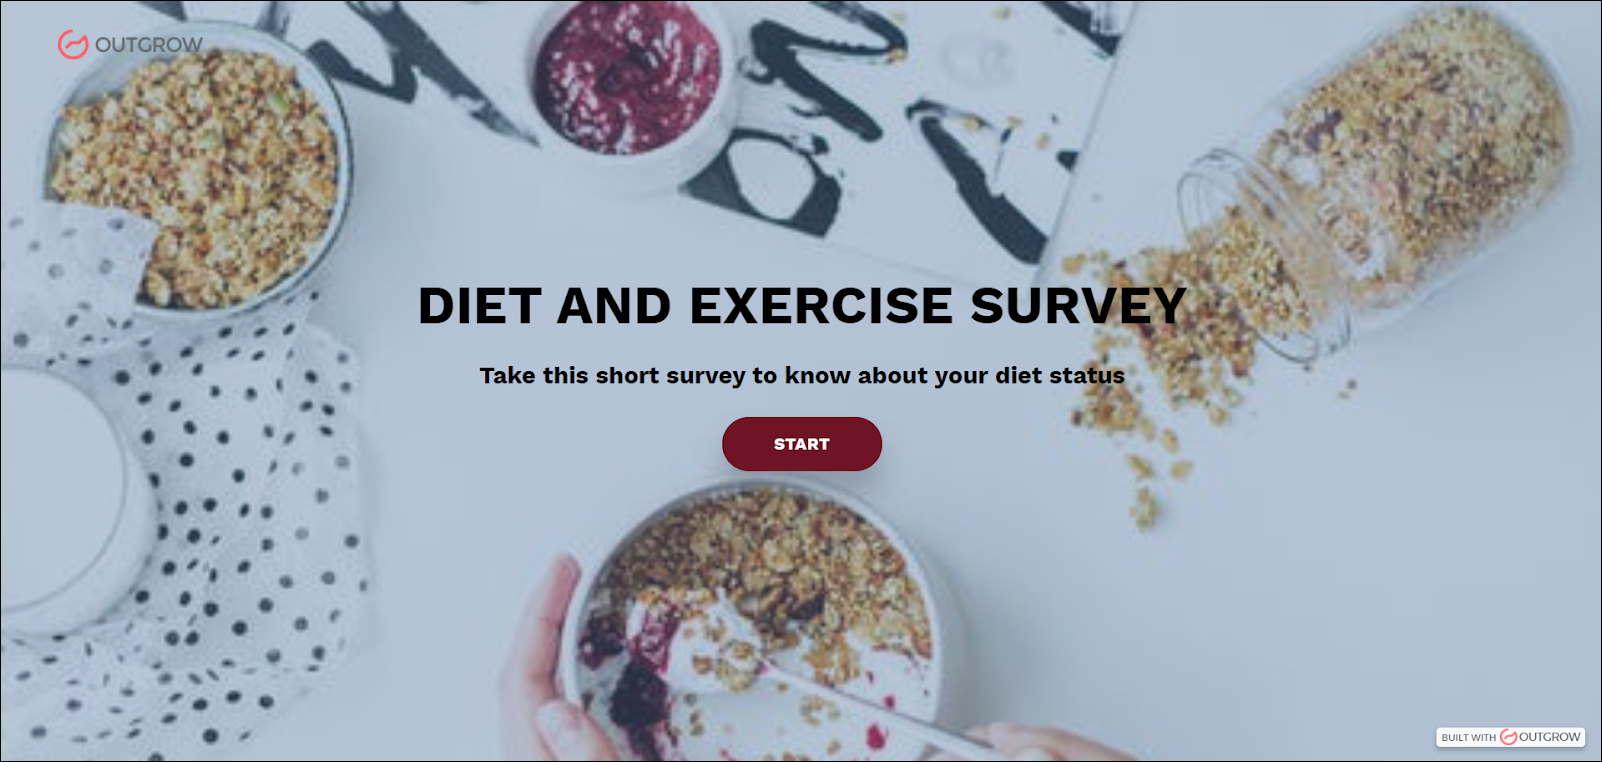 How to Create a Survey in 5 Minutes? - Outgrow